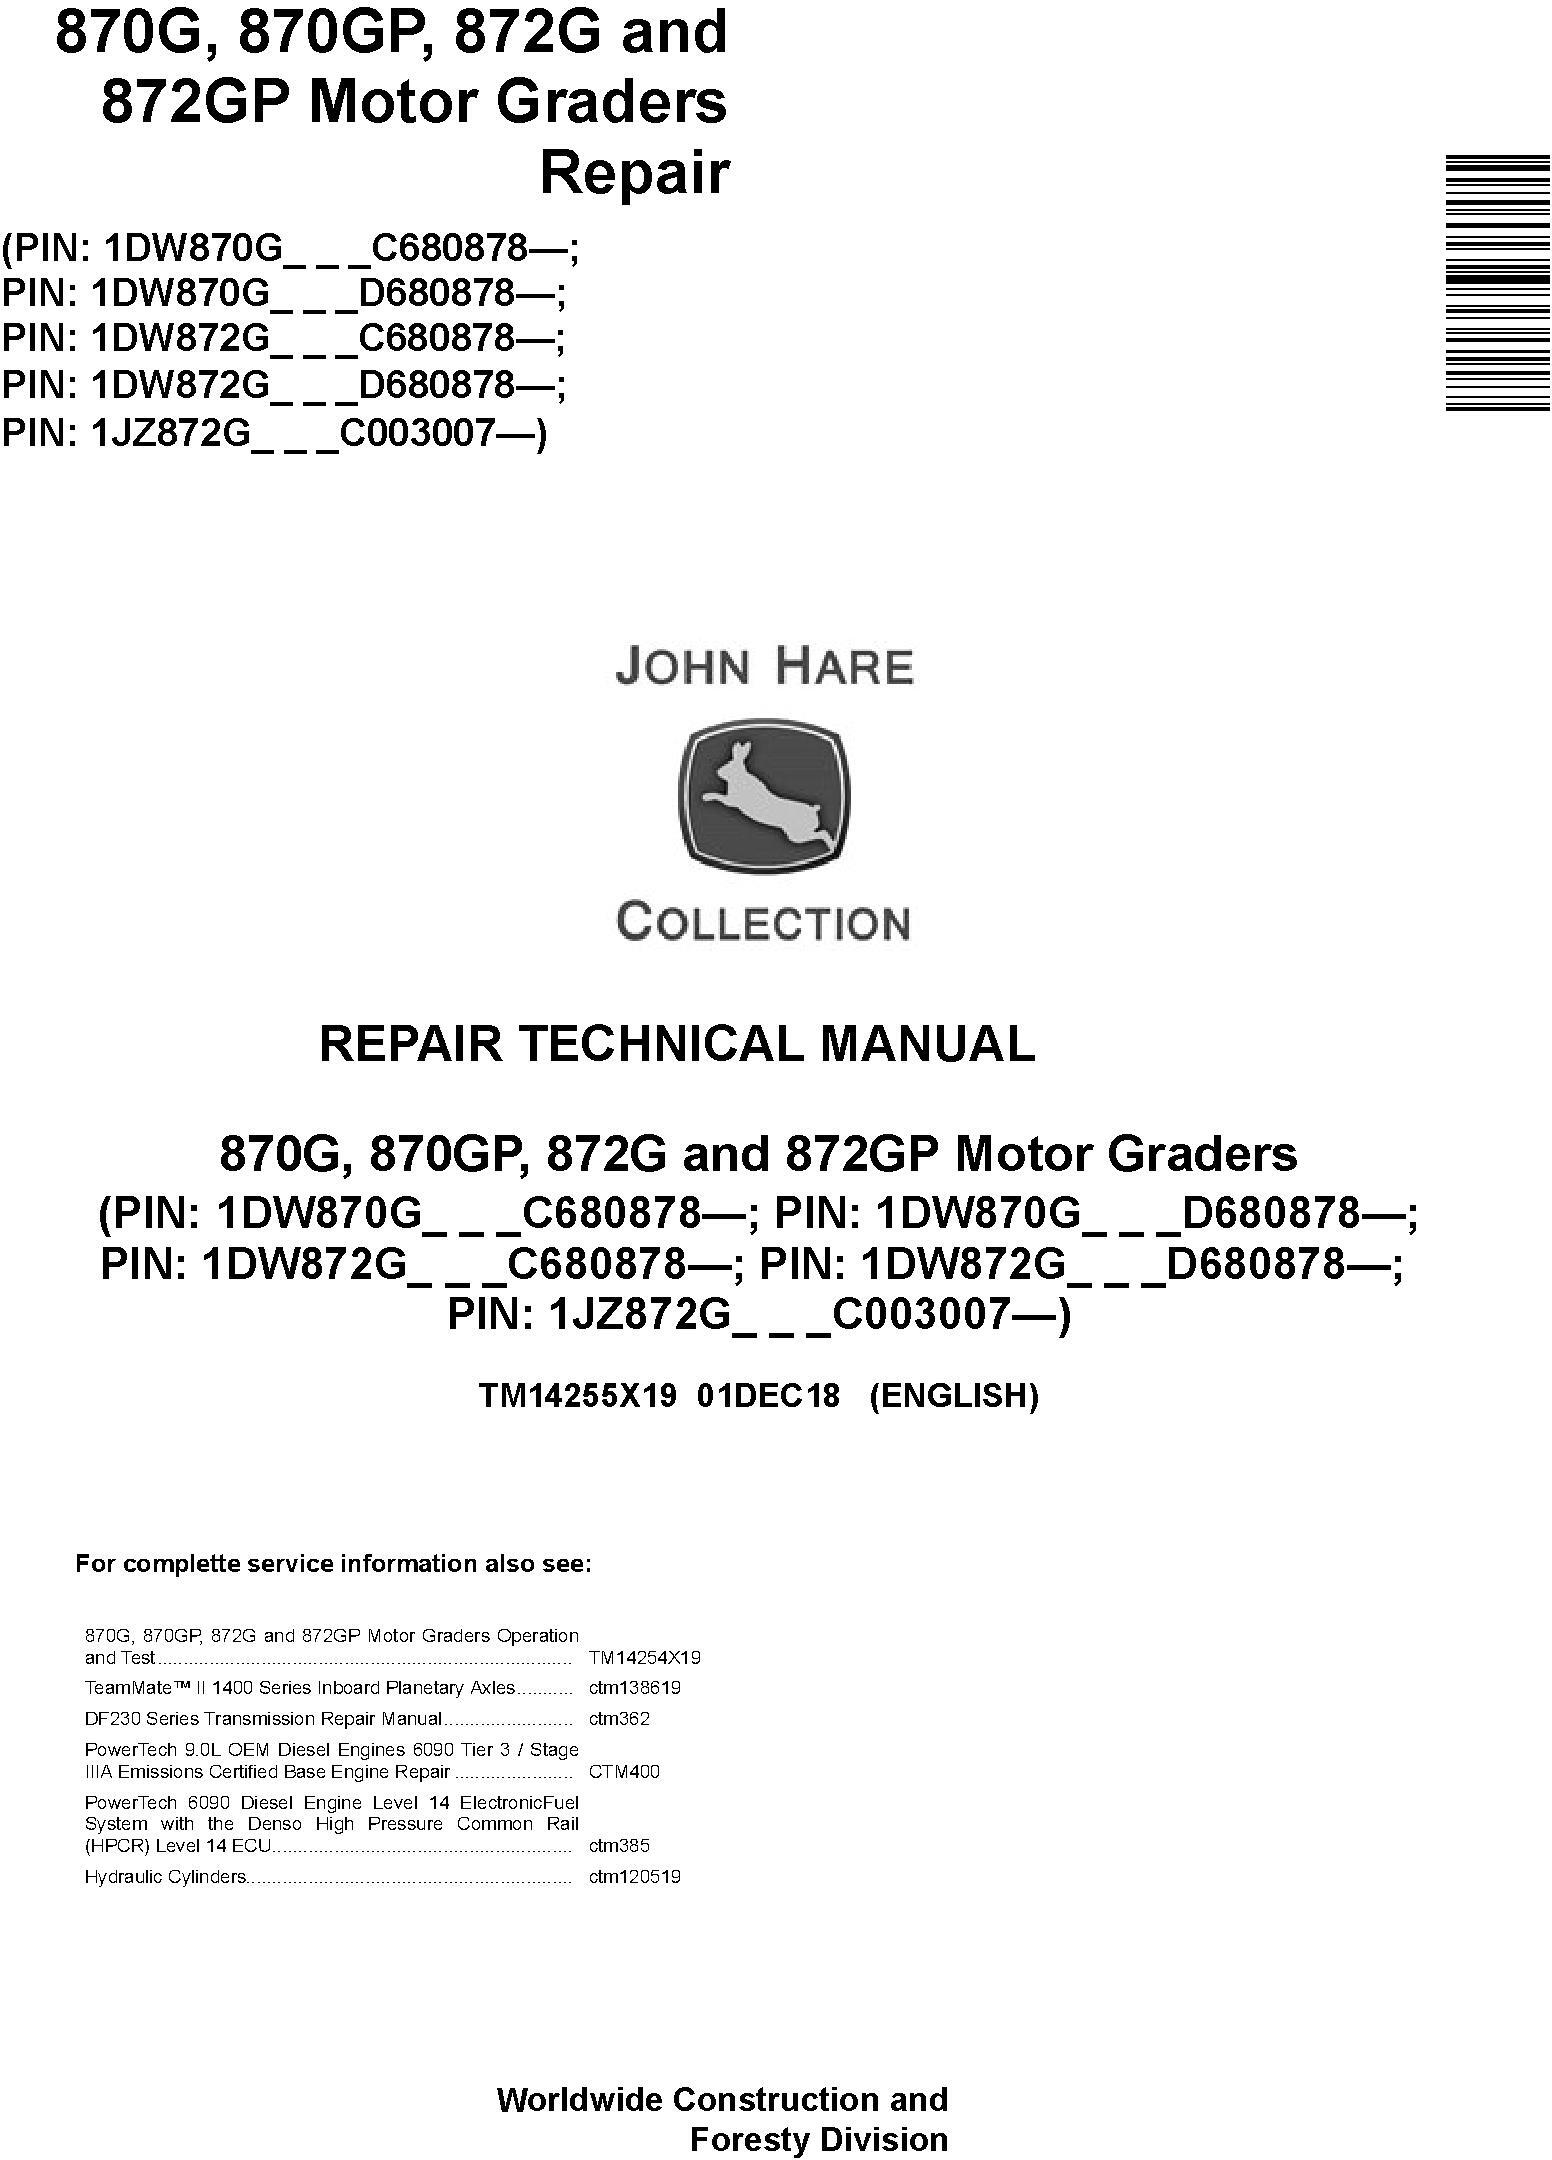 John Deere 870G, 870GP, 872G, 872GP (SN. C680878-,D680878-) Motor Graders Repair Manual (TM14255X19) - 19011